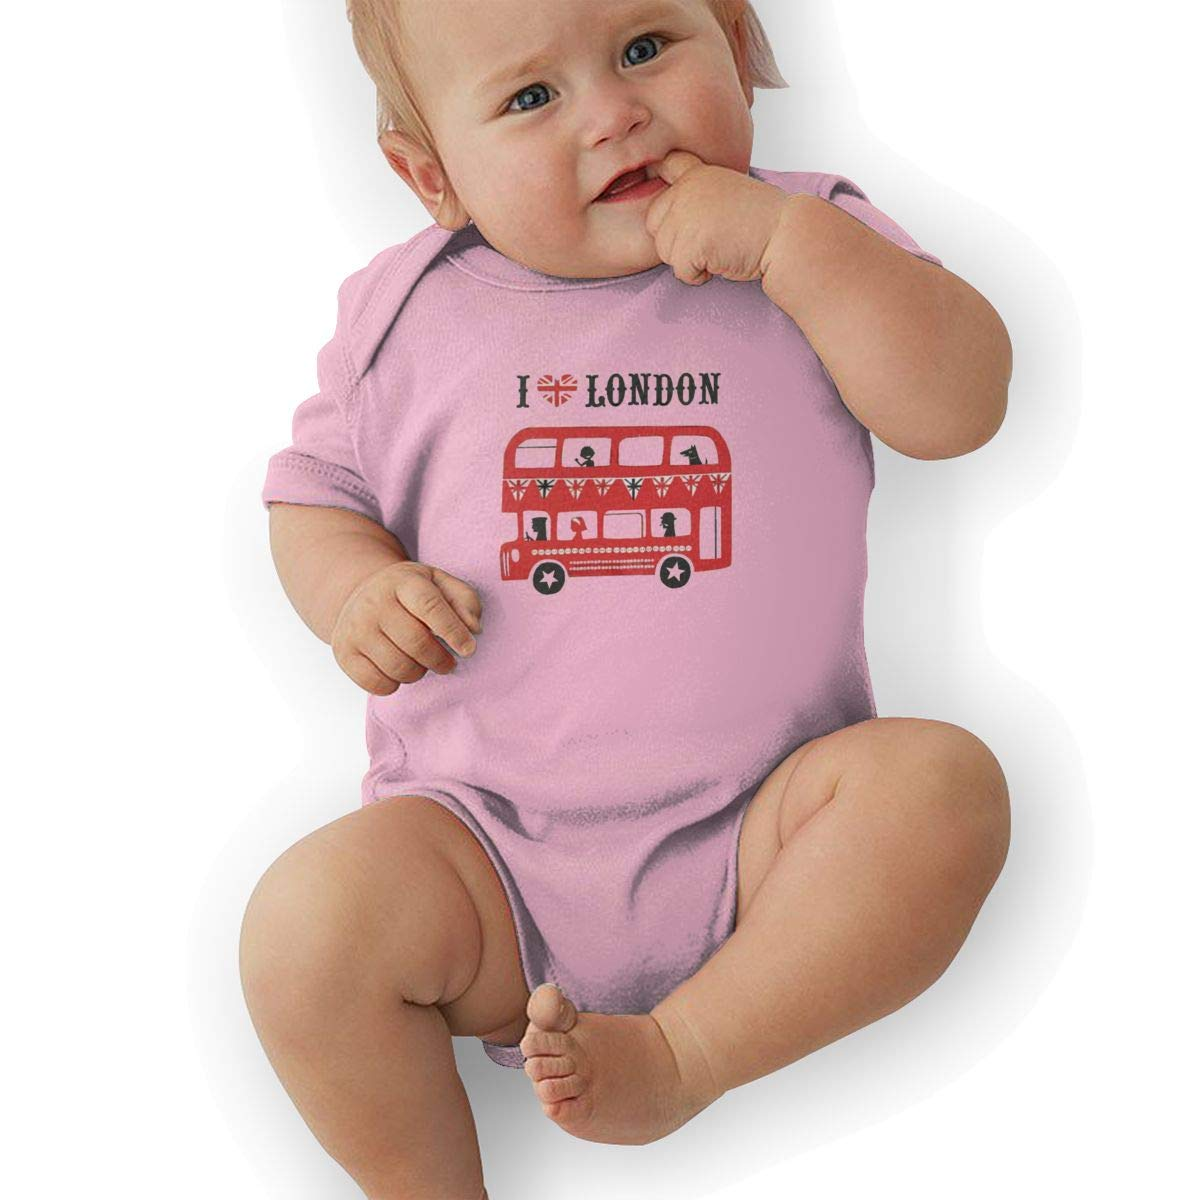 I Love London Baby Romper 0-18 Months Newborn Baby Girls Boys Layette Rompers Black